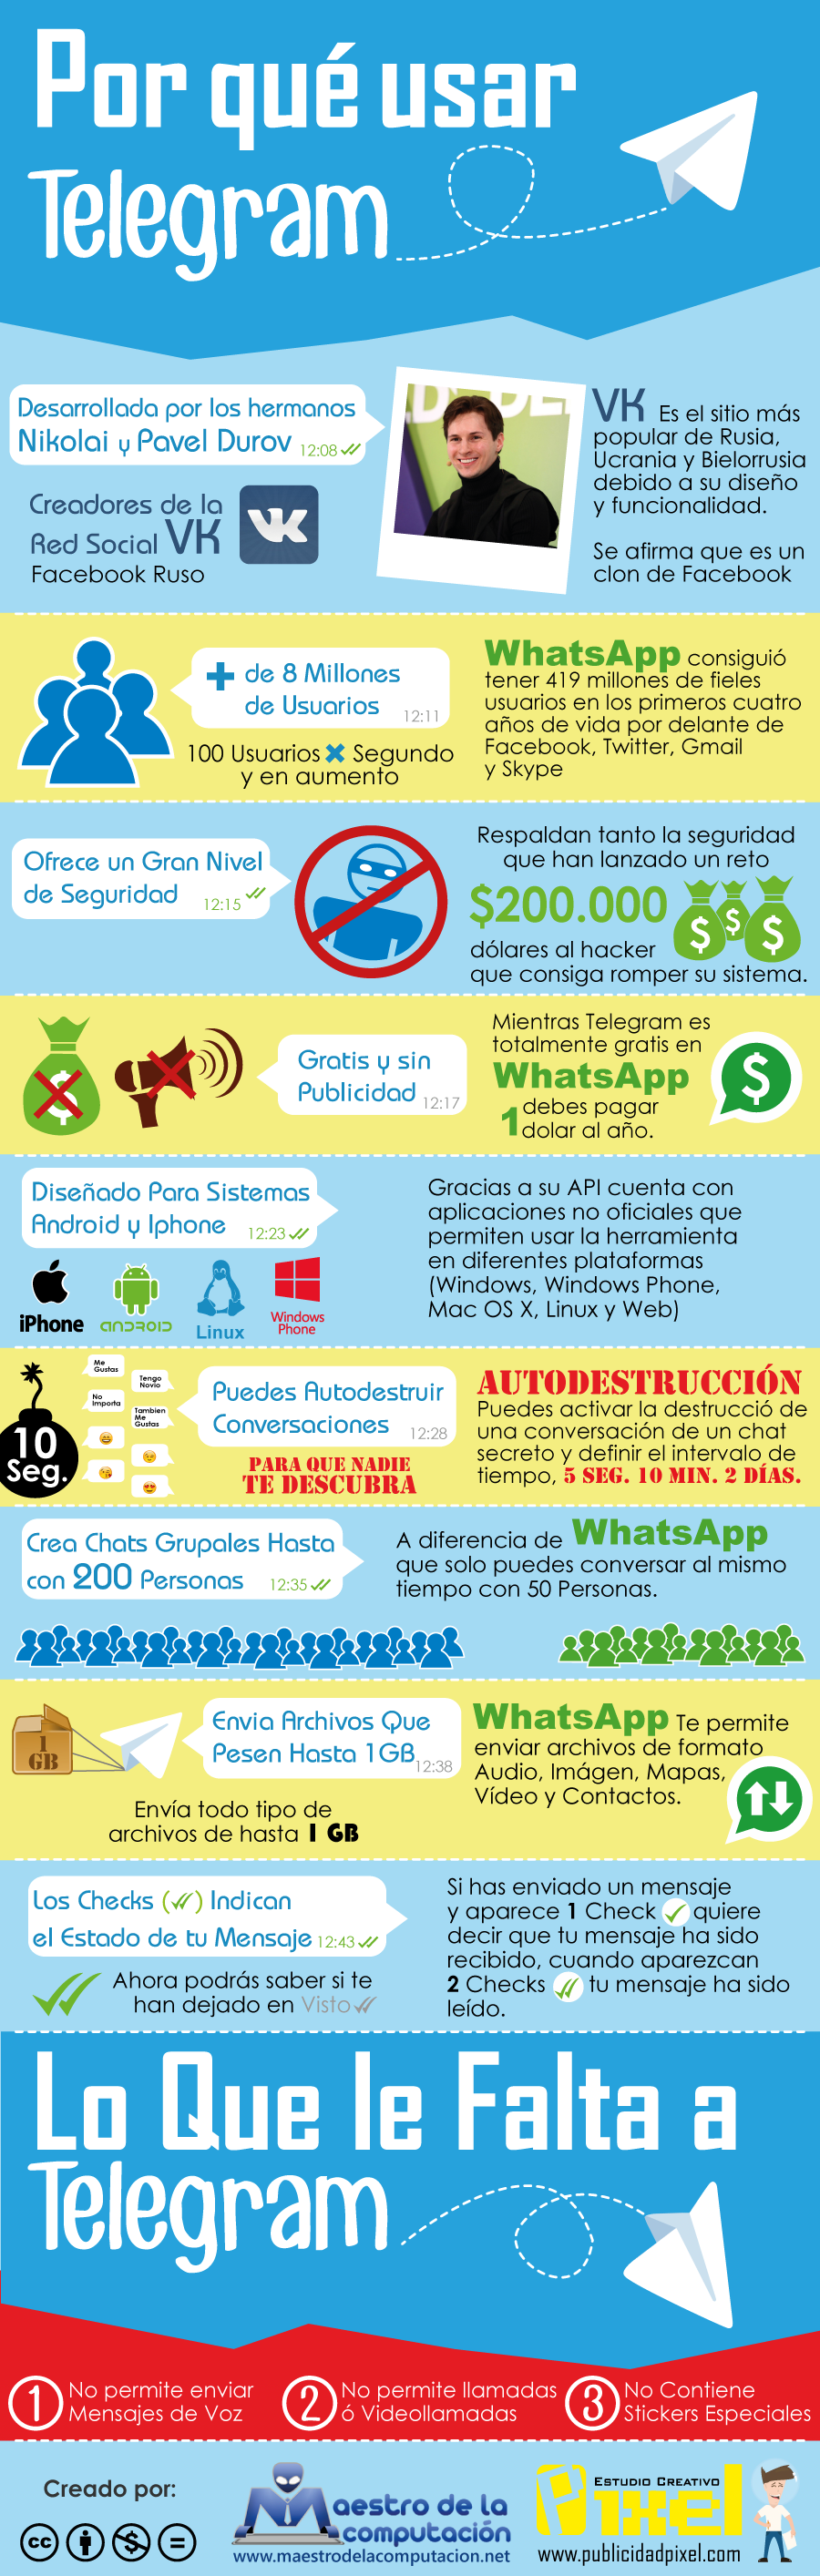 infografia-telegram